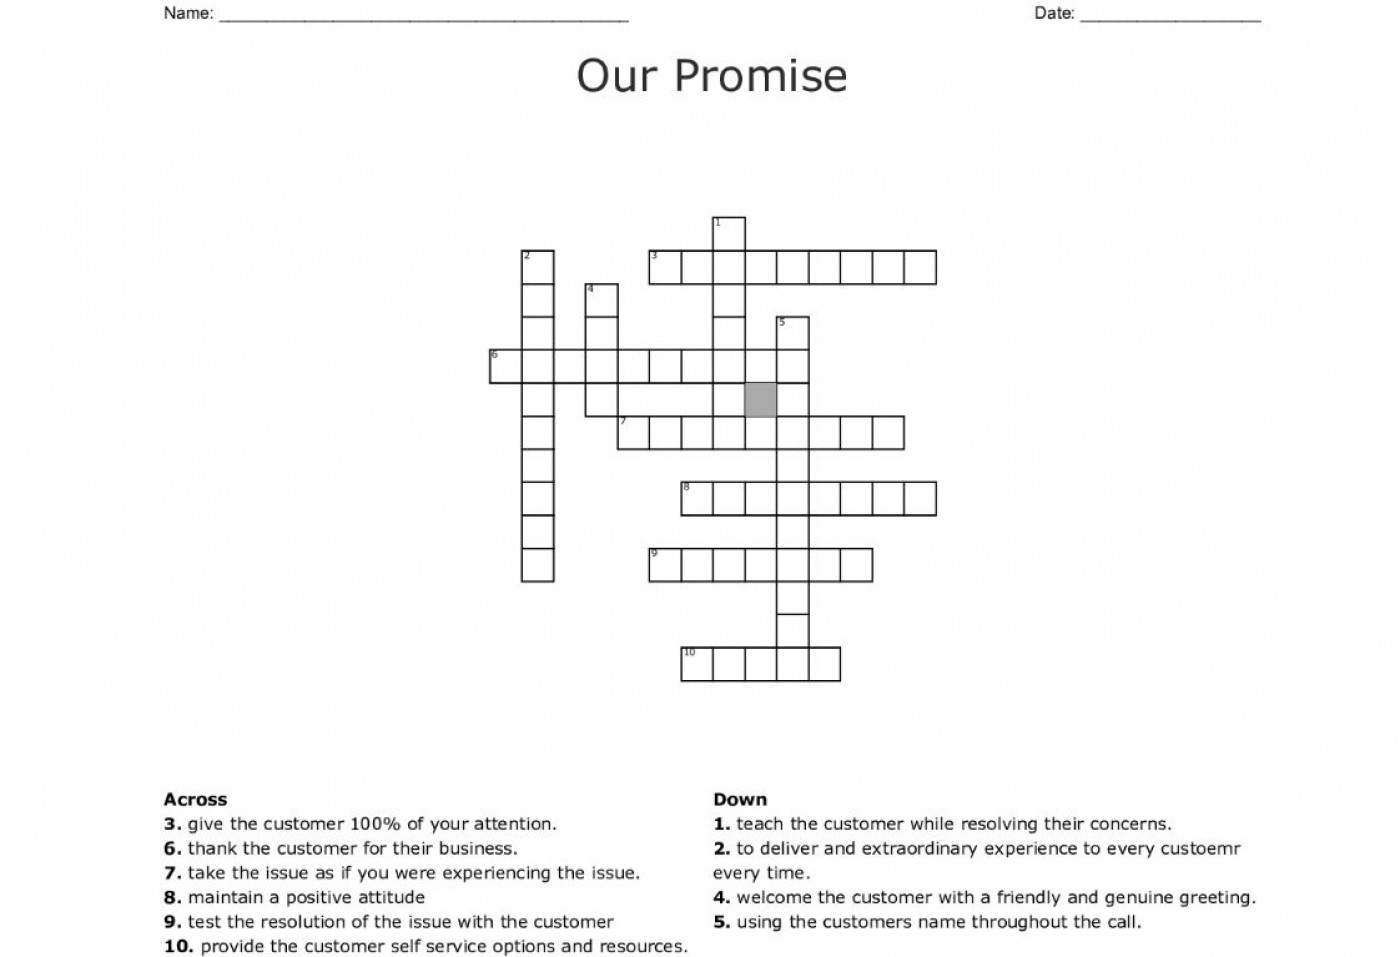 002 Marvelou Promise Crossword Clue Highest Clarity  Go Back On A 6 Letter 3 Of Marriage 91400